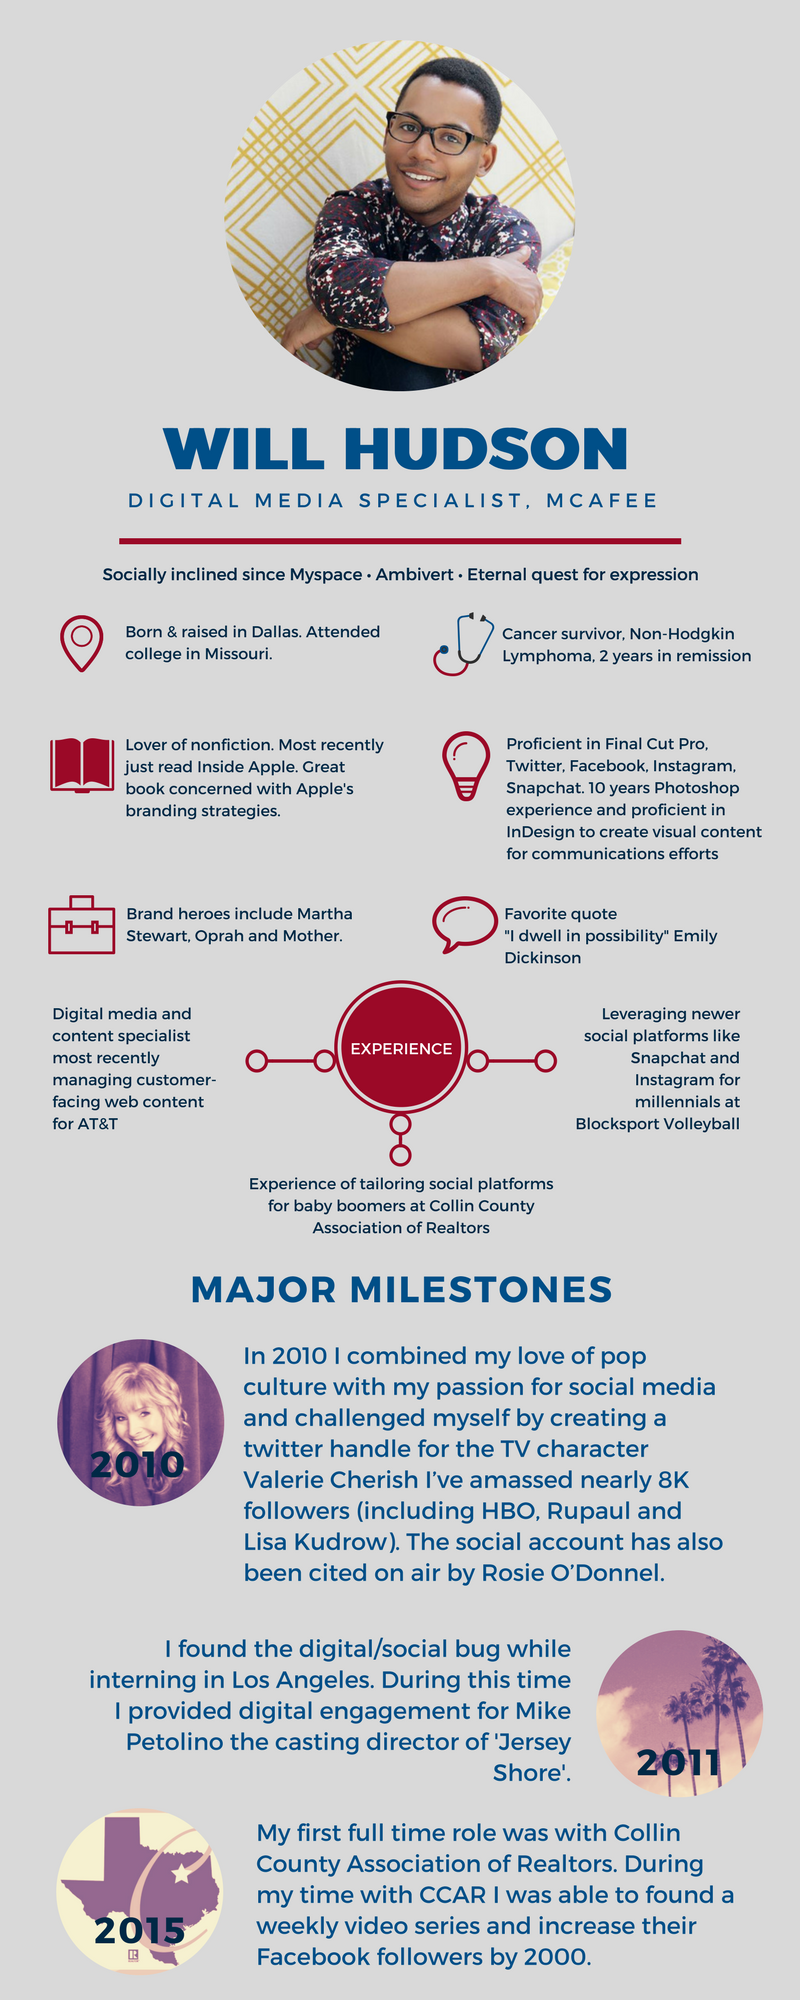 Infographic created to intoduce myself to McAfee team